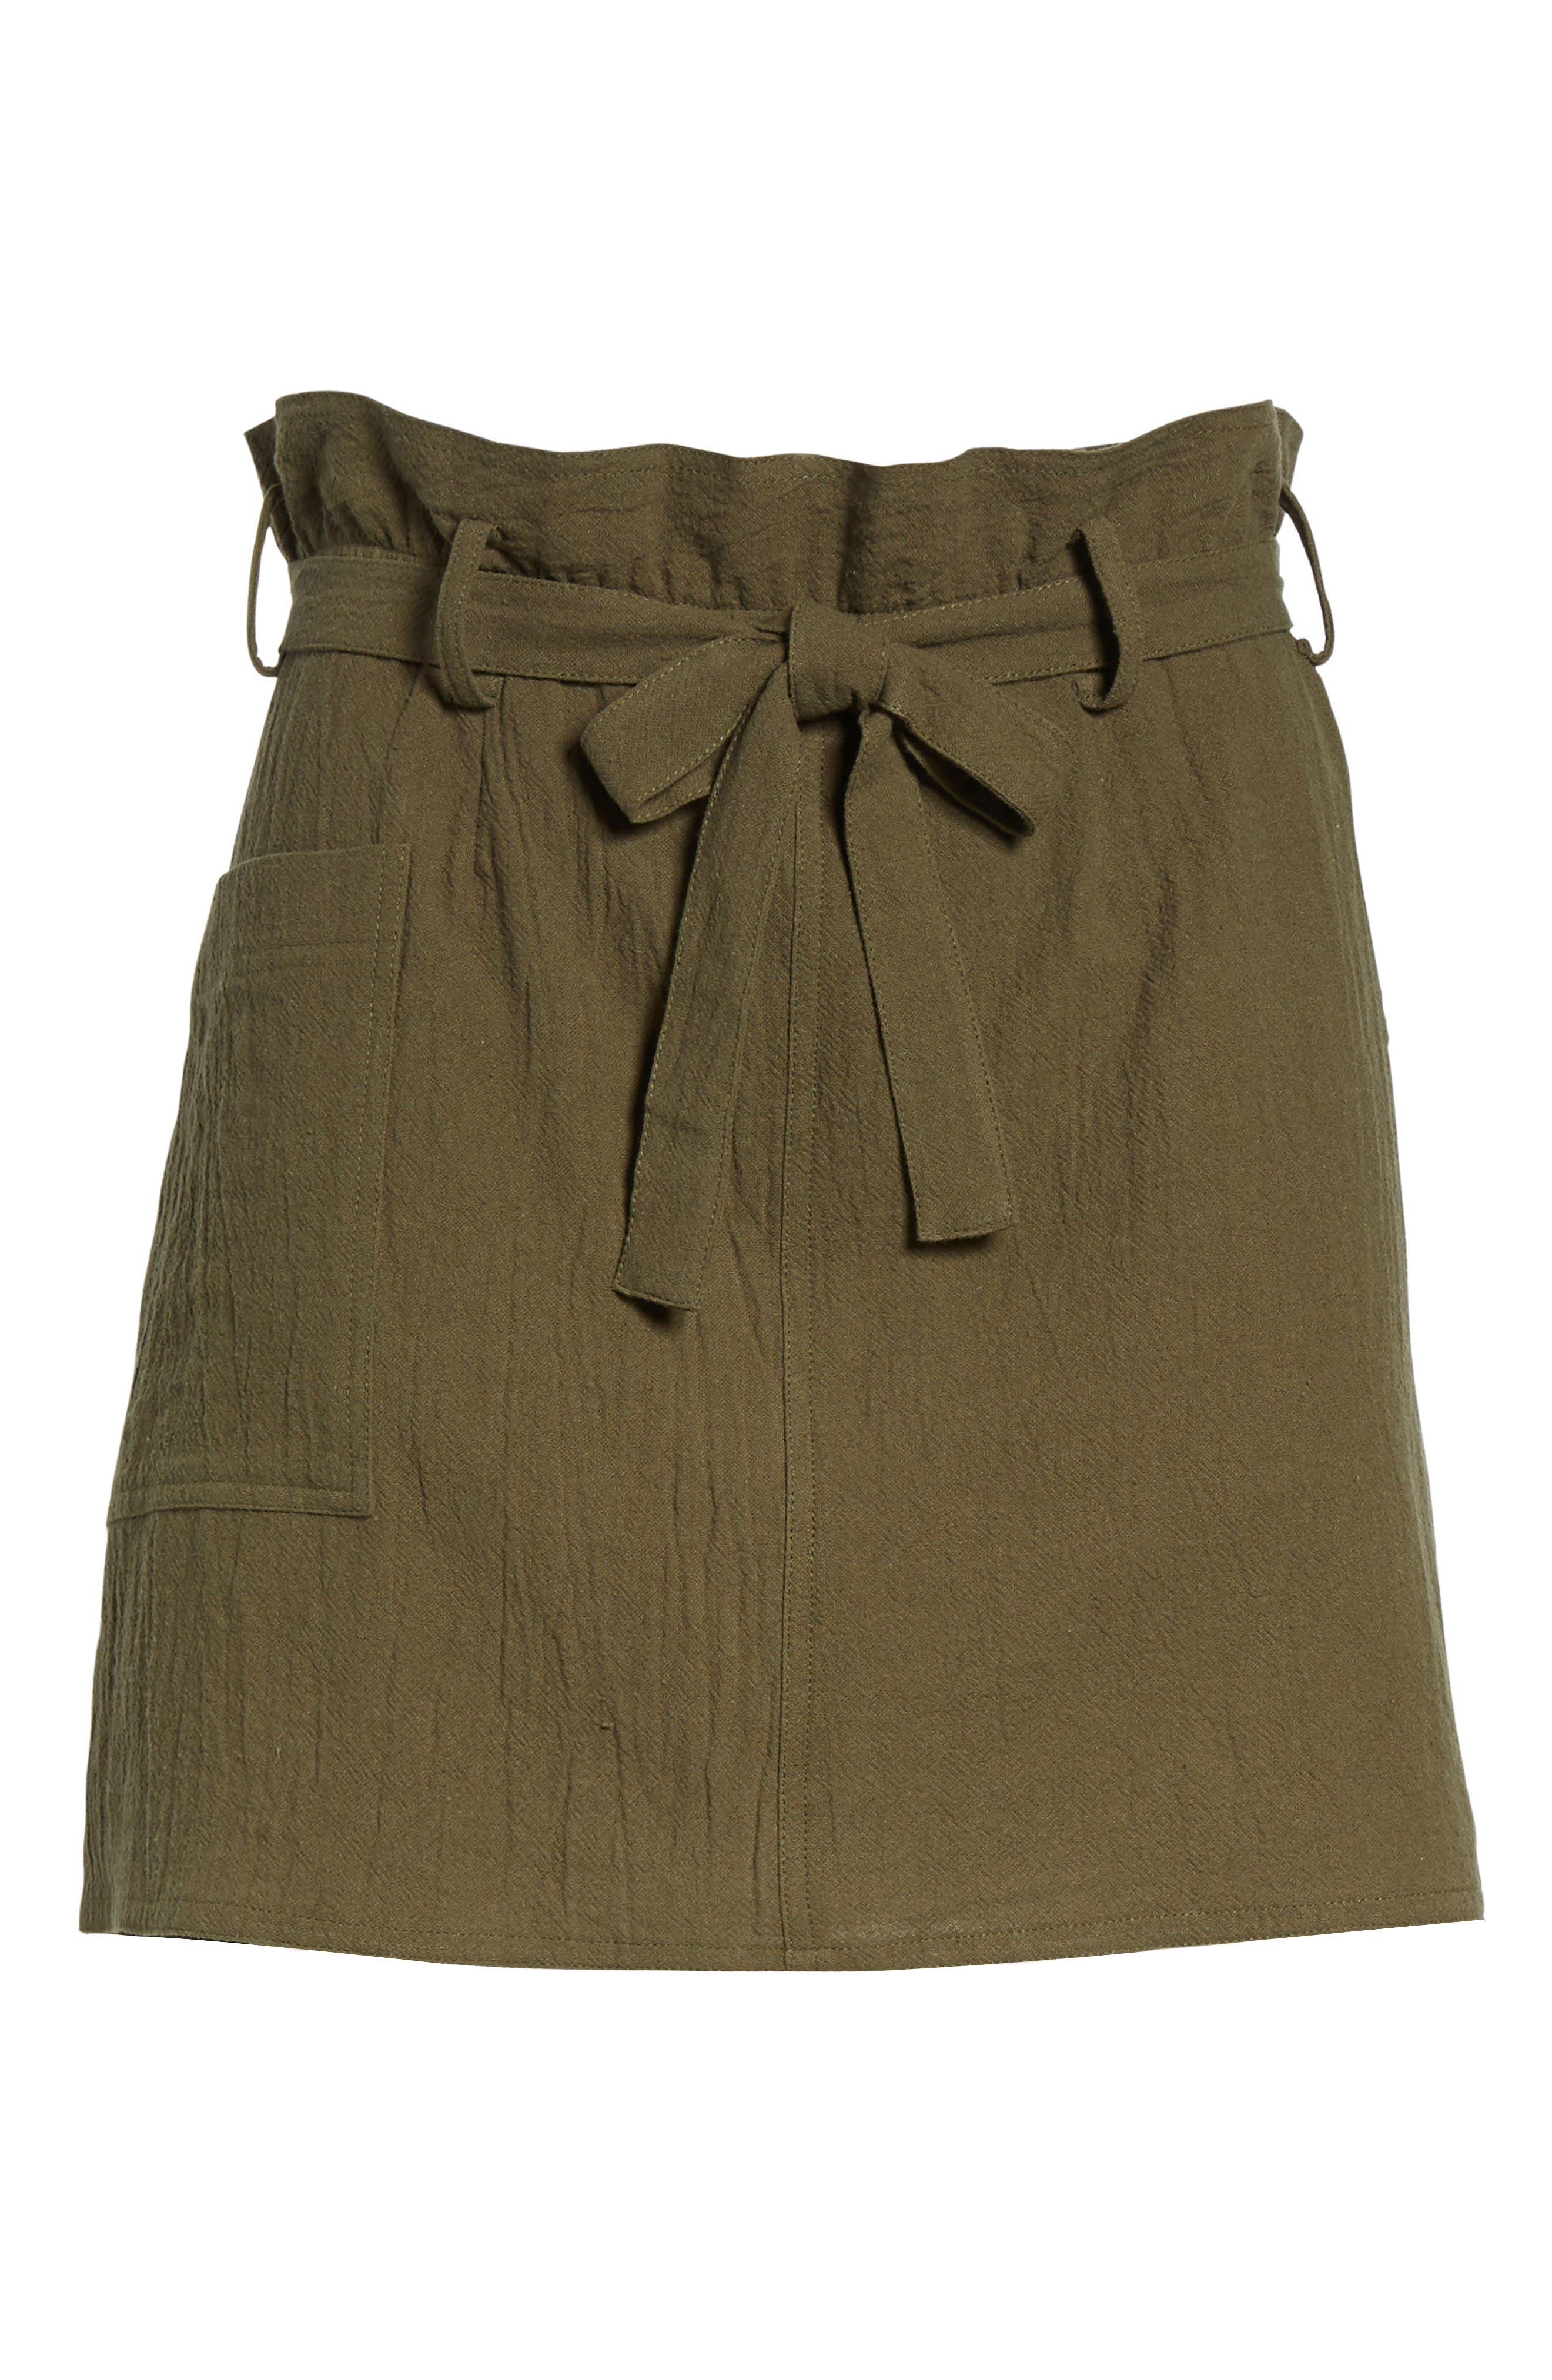 Paperbag Miniskirt,                             Alternate thumbnail 6, color,                             300